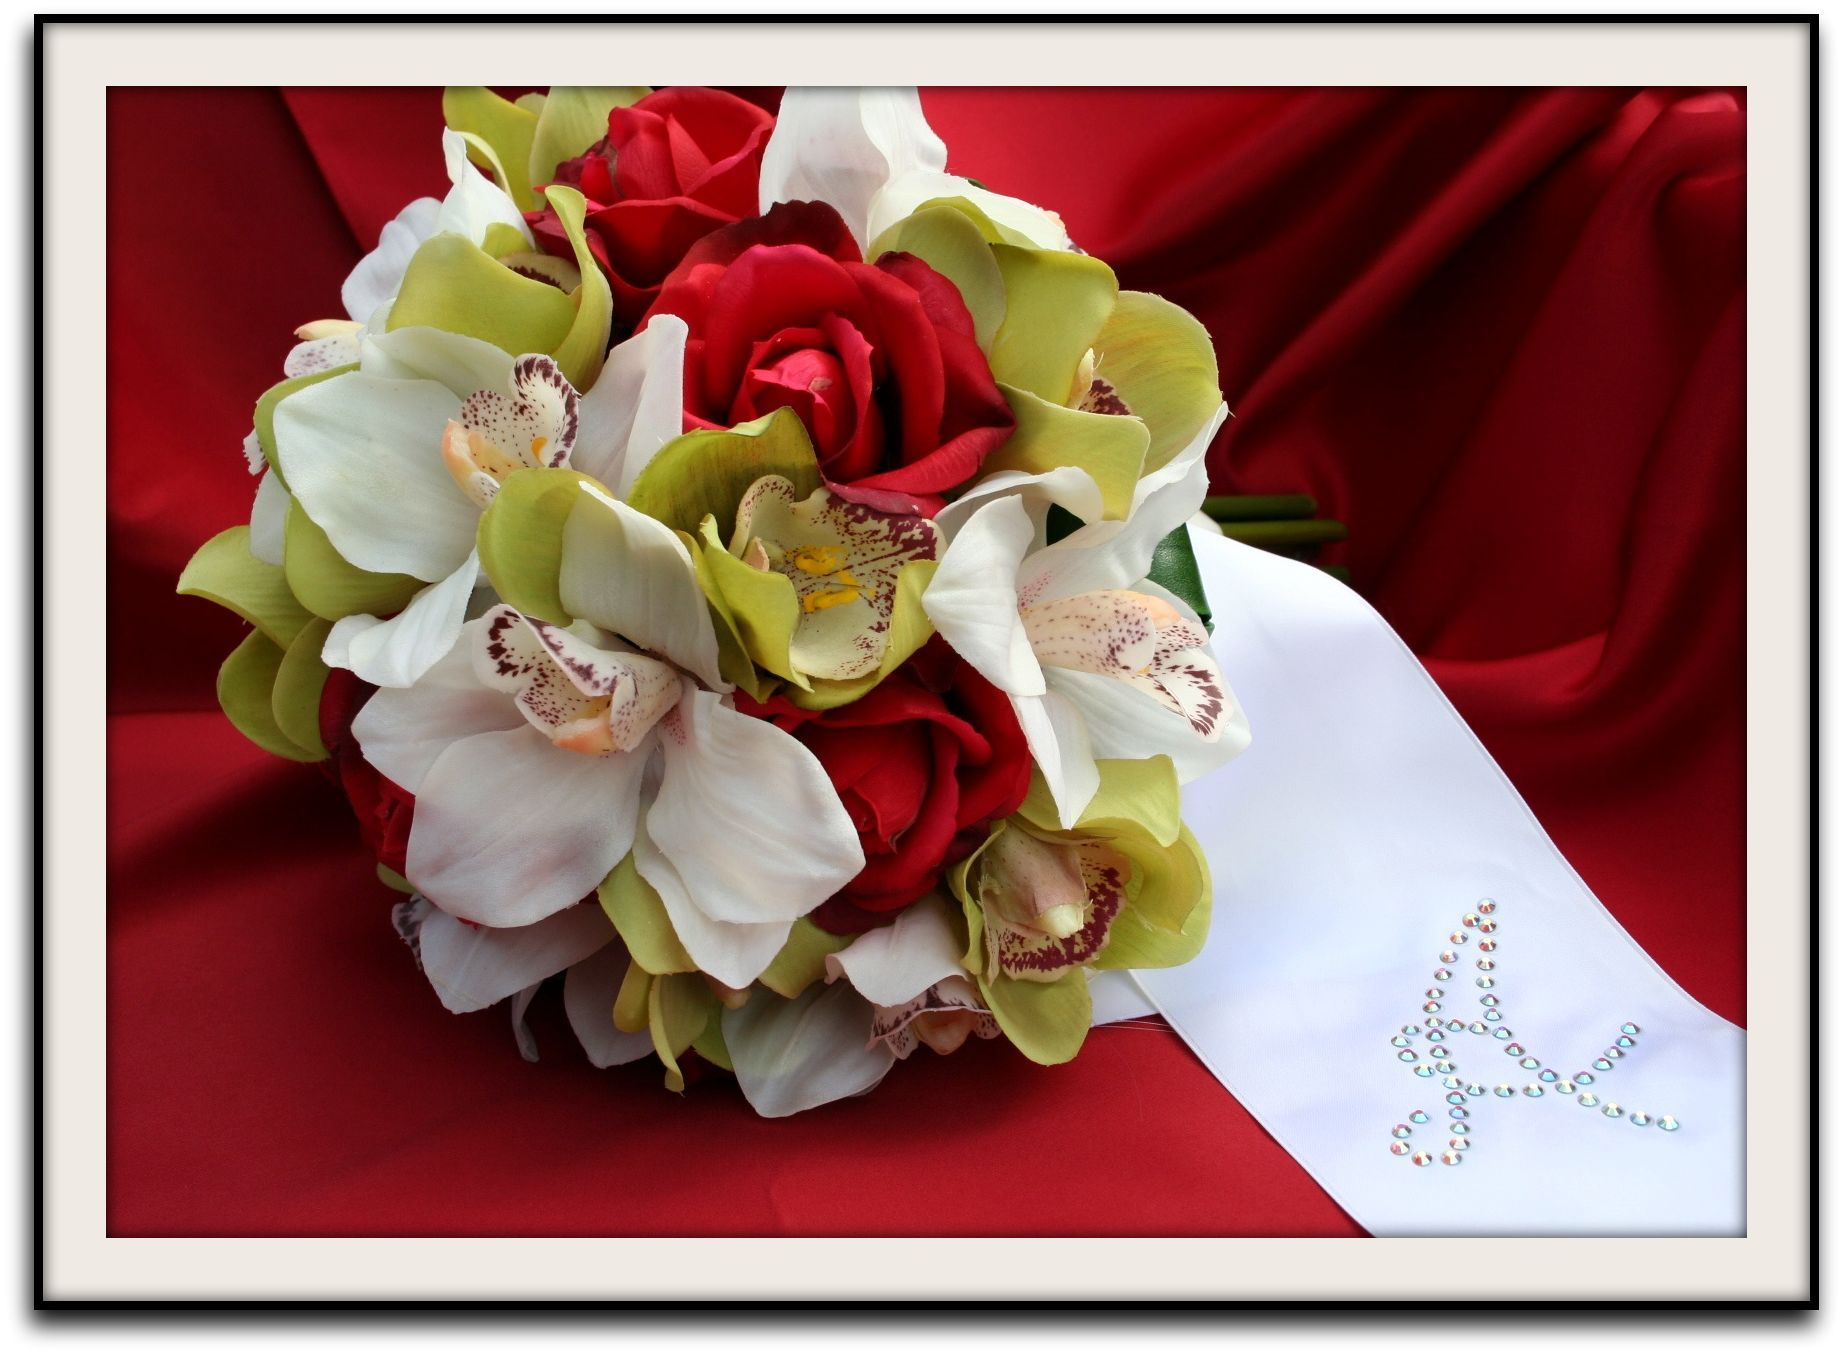 Flowers & Decor, white, red, green, Bride Bouquets, Flowers, Roses, Bouquet, Wedding, Sash, Natural, Bling, Crystals, Touch, Shavons wedding silks